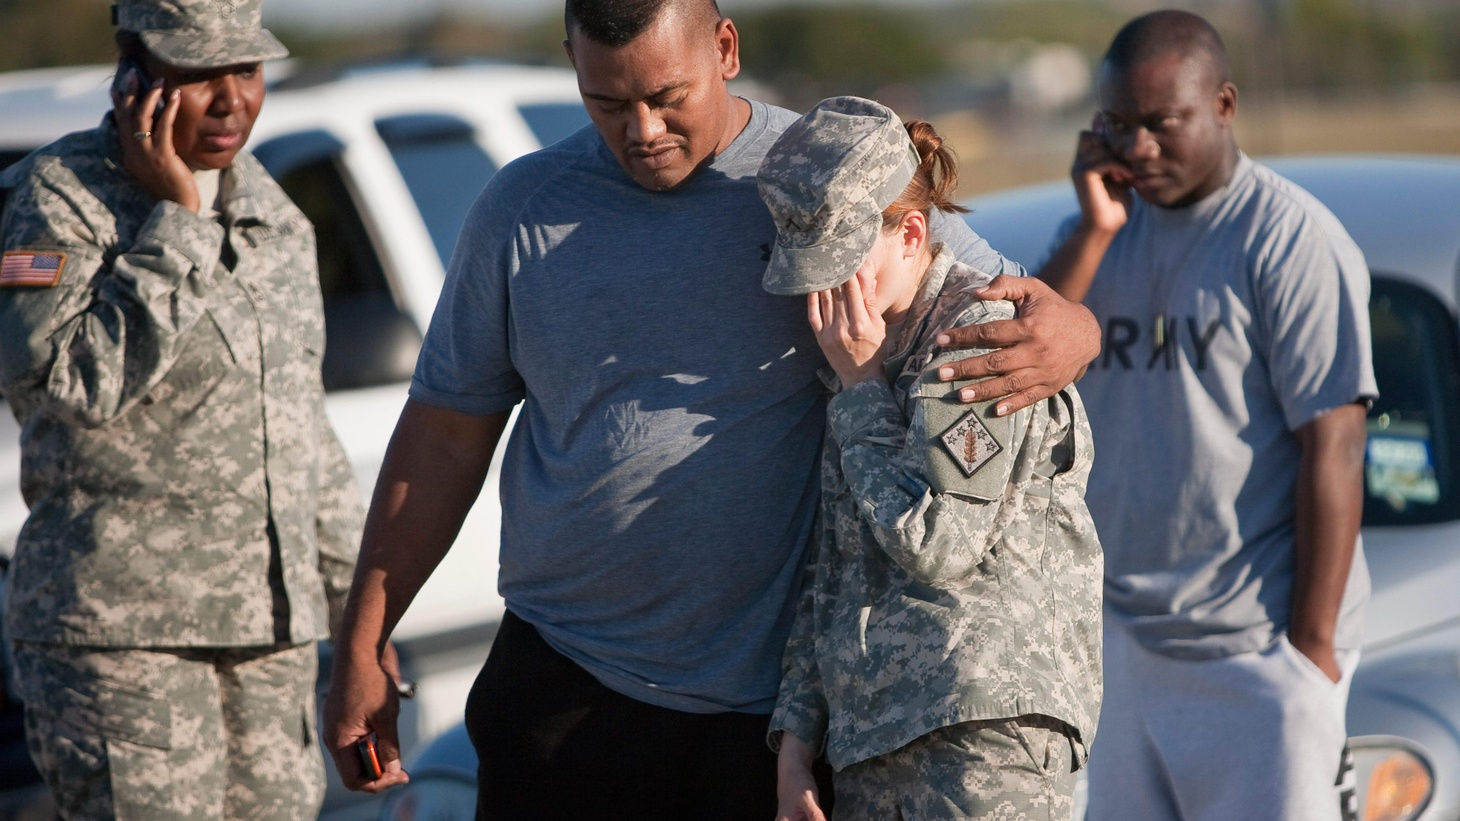 At least 13 people were killed and another 30 wounded today at Fort Hood when an Army psychiatrist opened fire at the Texas military base. We update that story and present a round-up of other news events of the day. (Airs 7-8pm and pre-empts Which Way, L.A.?)